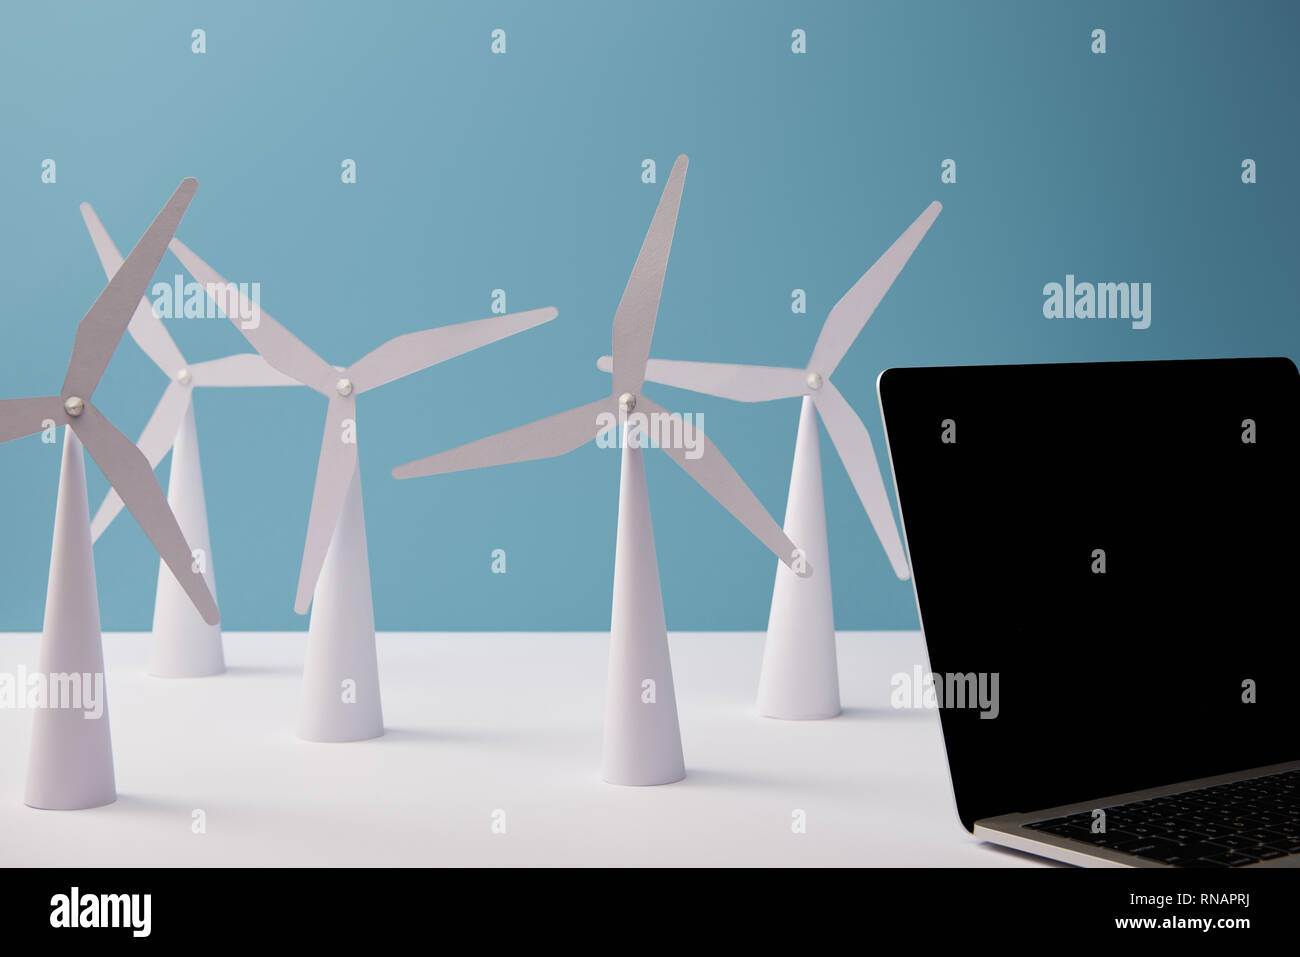 laptop on white table with windmill models on blue background - Stock Image